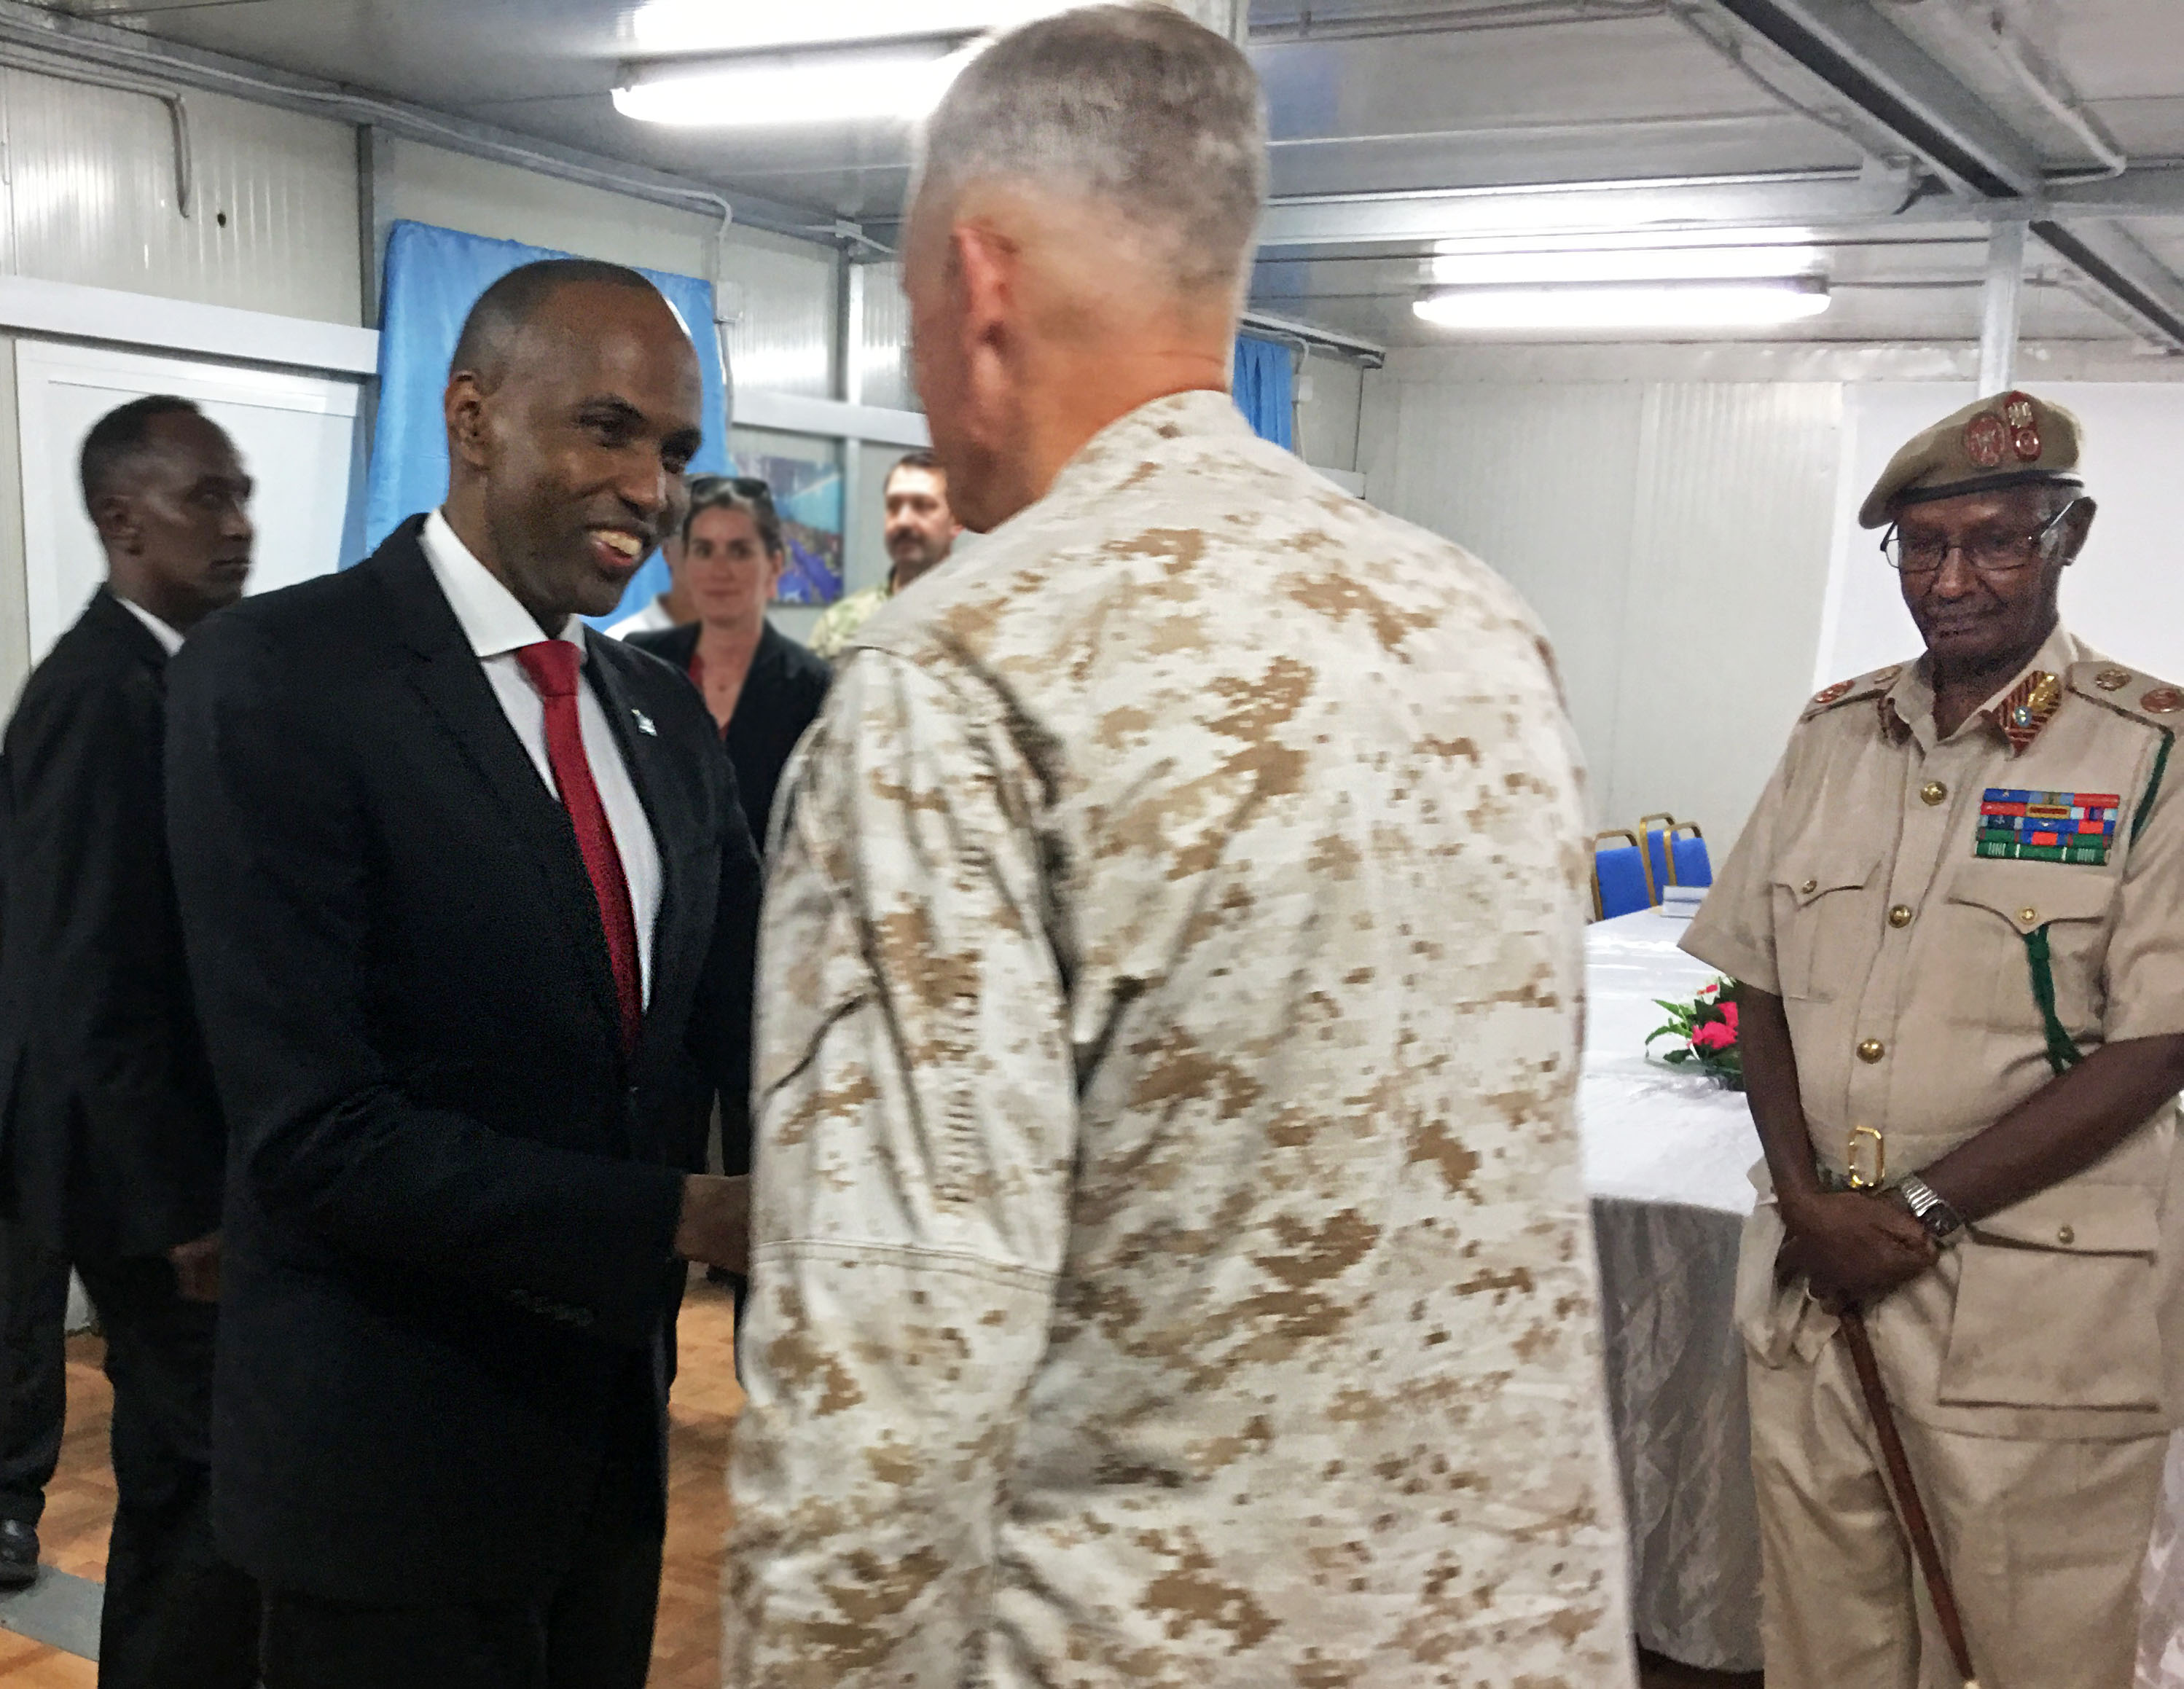 Somali Prime Minister Hassan Ali Khaire greets U.S. Marine Corps Gen. Thomas D. Waldhauser, commander, U.S. Africa Command, June 11, 2019 in Mogadishu, Somalia. During the visit AFRICOM senior leaders met with key Somali leaders to discuss progress the U.S. interagency team witnessed in Somalia, as well as U.S. whole-of-government support for the Federal Government of Somalia.